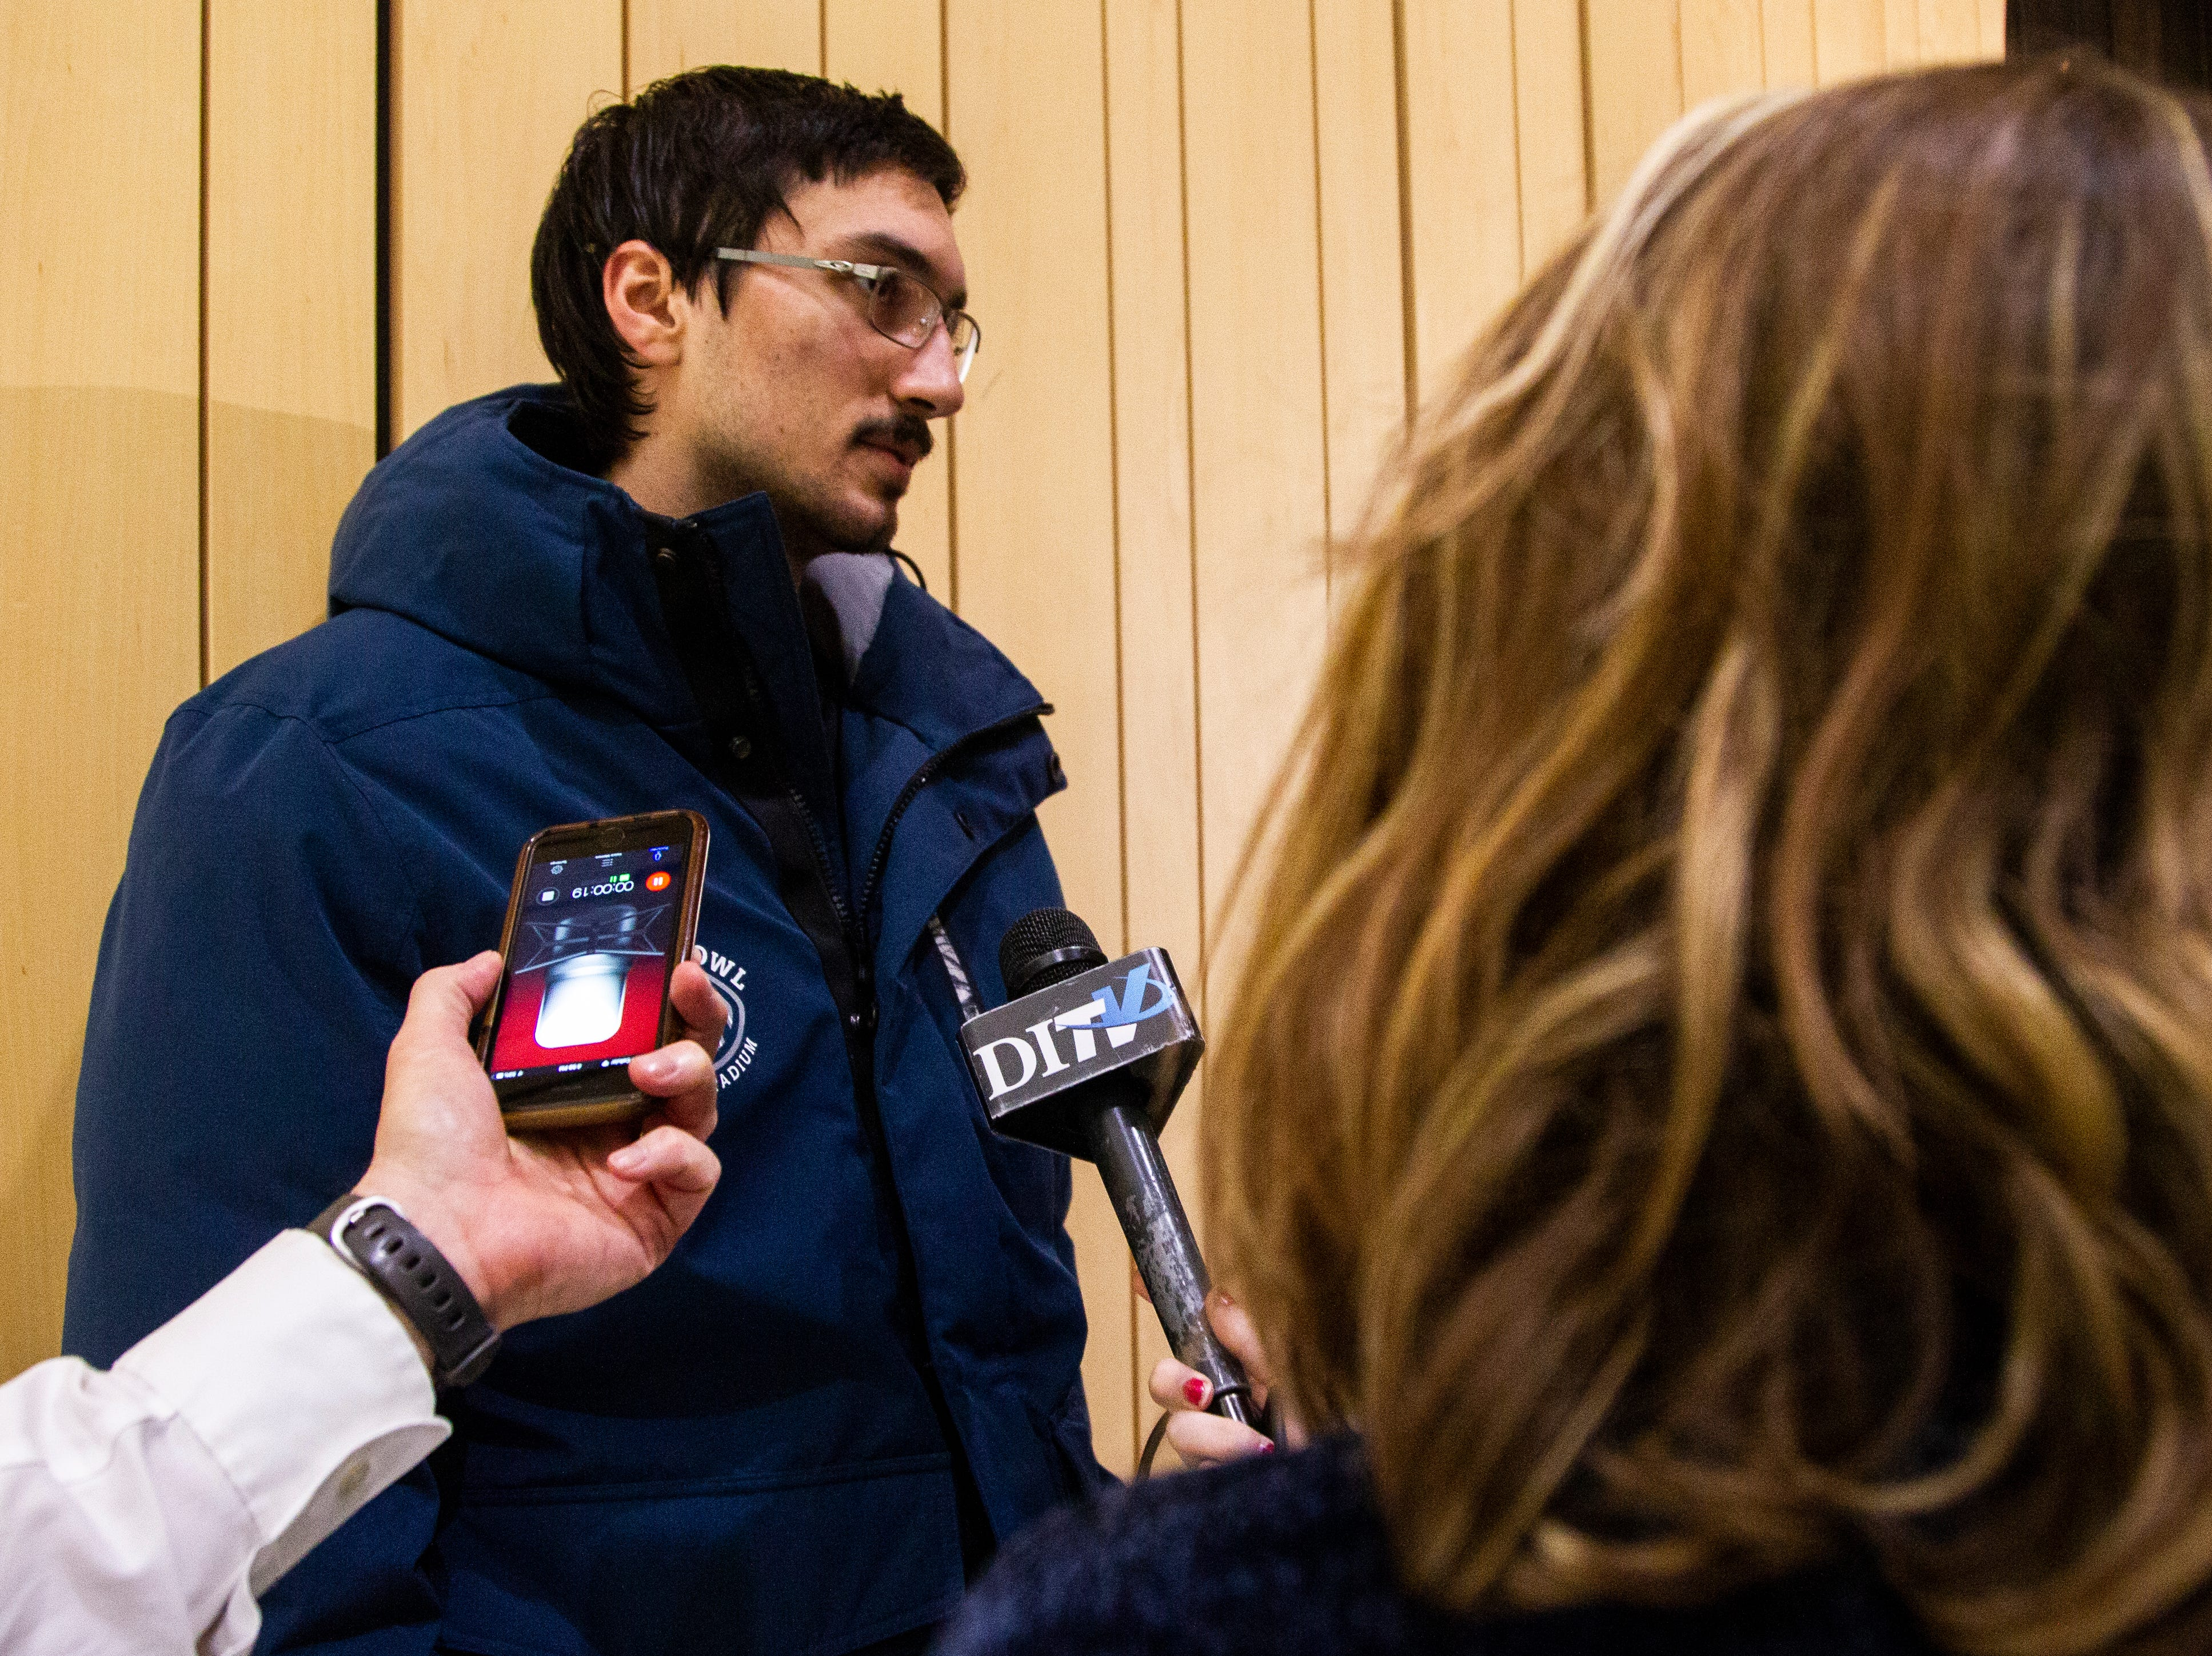 Iowa placekicker Miguel Recinos talks with reporters during an Outback Bowl announcement press conference on Sunday, Dec. 2, 2018, at the Hansen Football Performance Center in Iowa City.